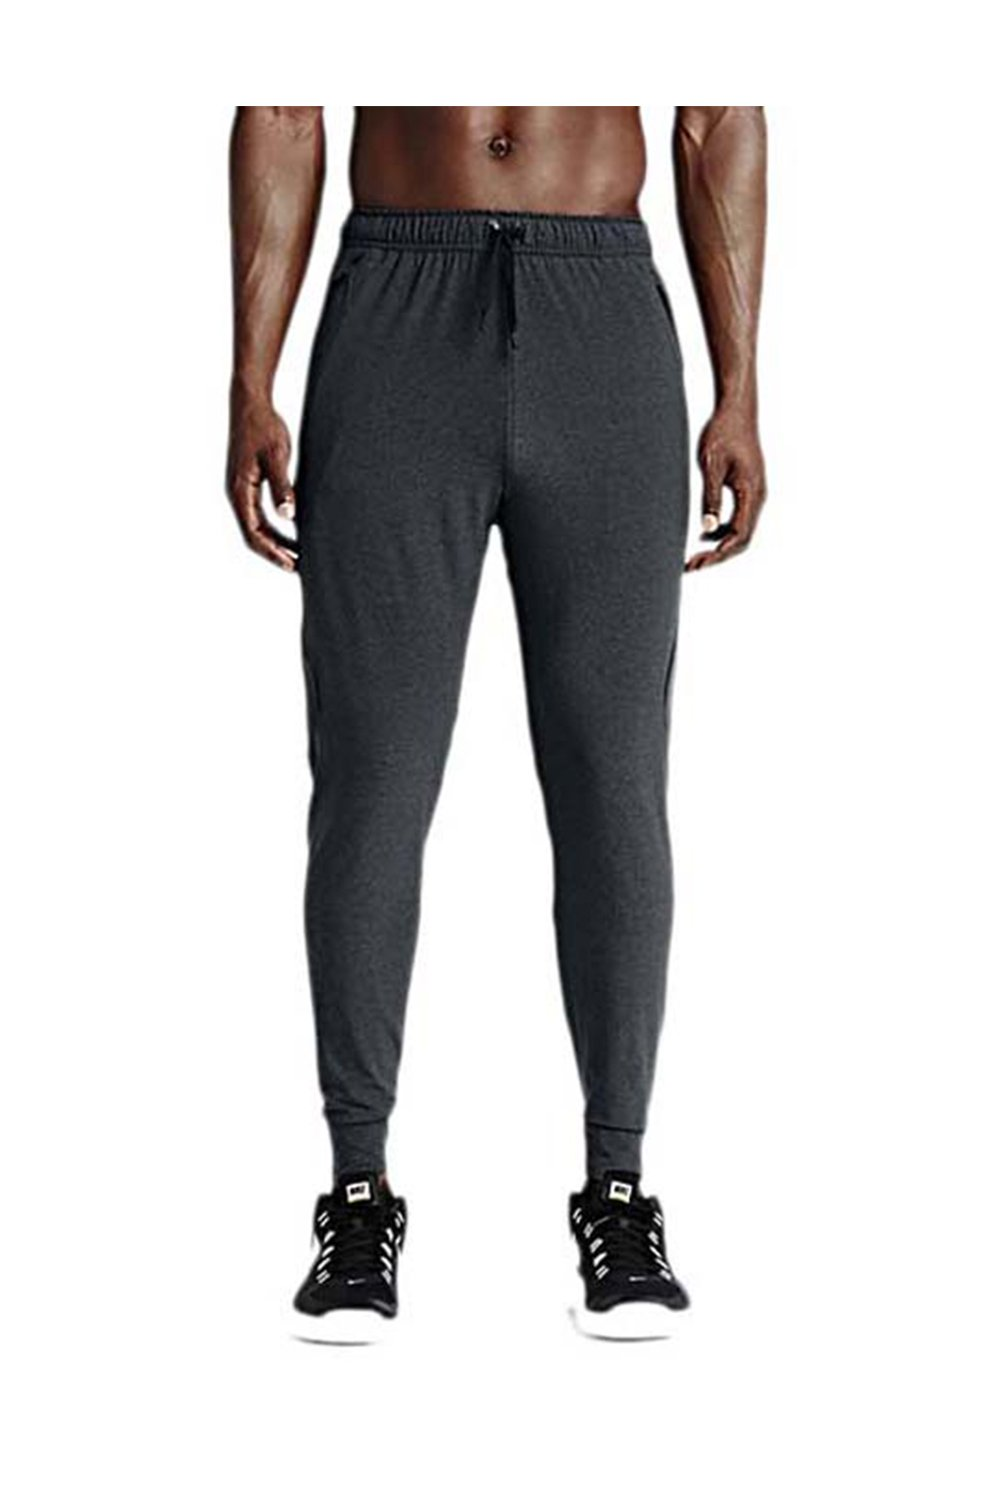 Nike Tech Woven Men's Training Pants (Large)